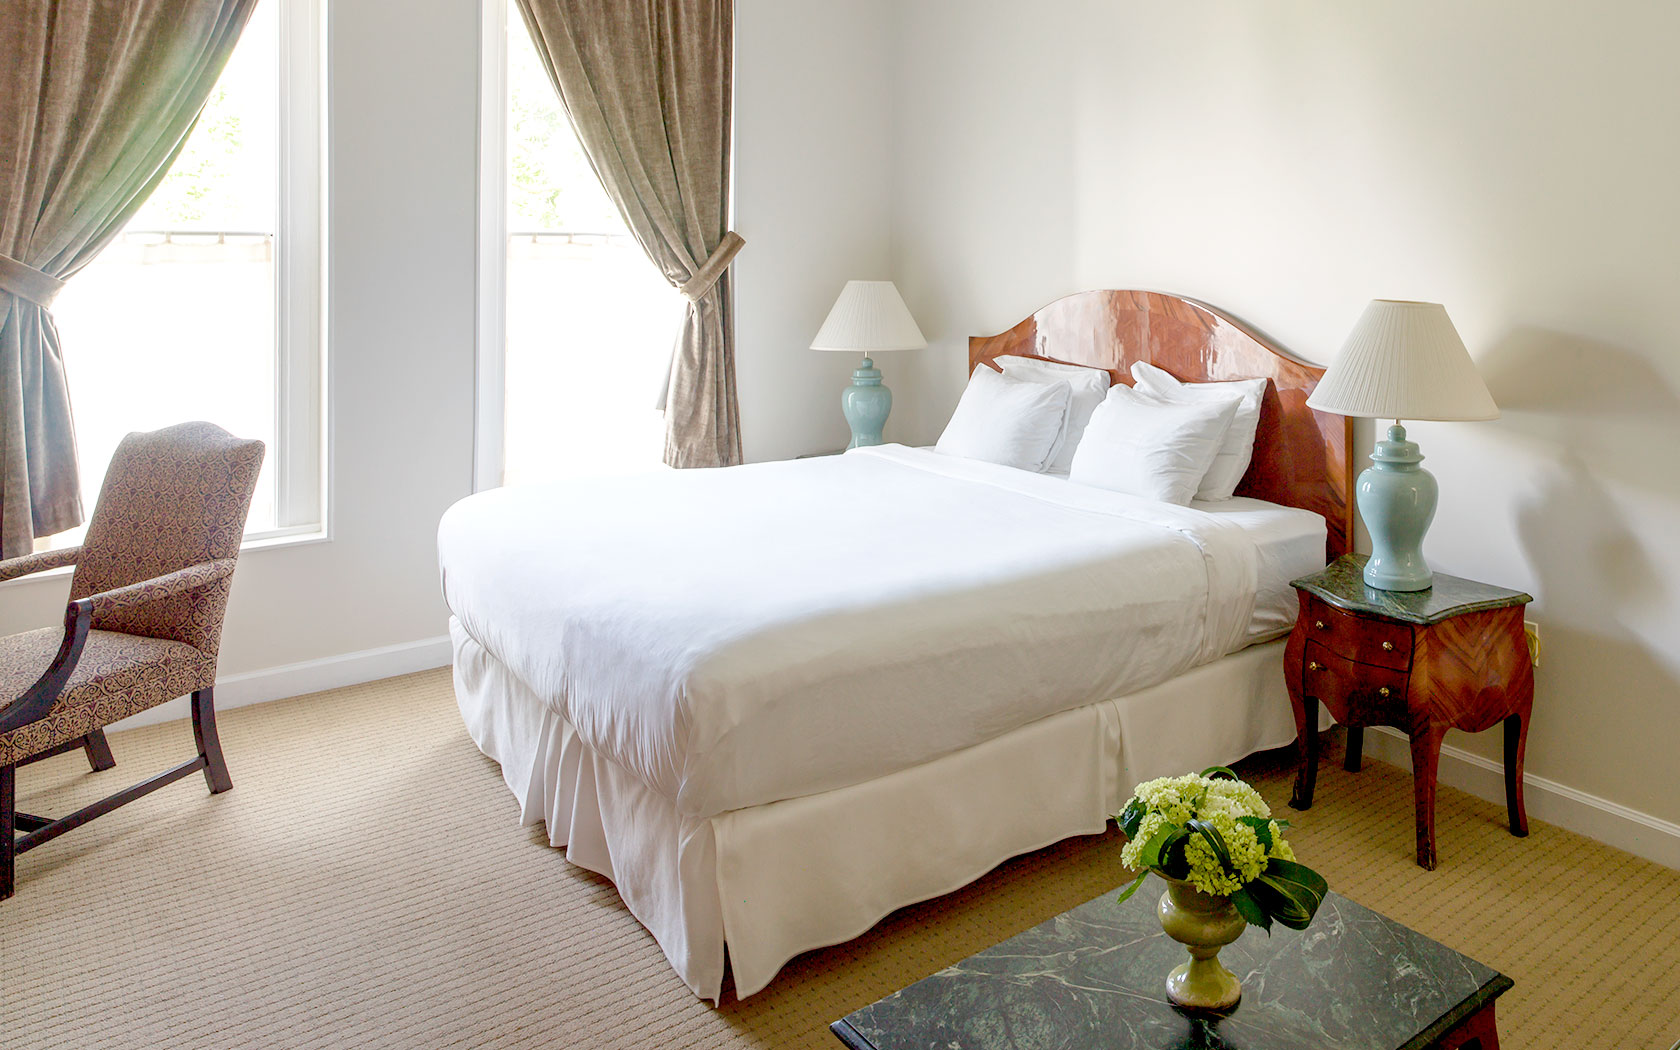 double bed with white linens and vintage furniture